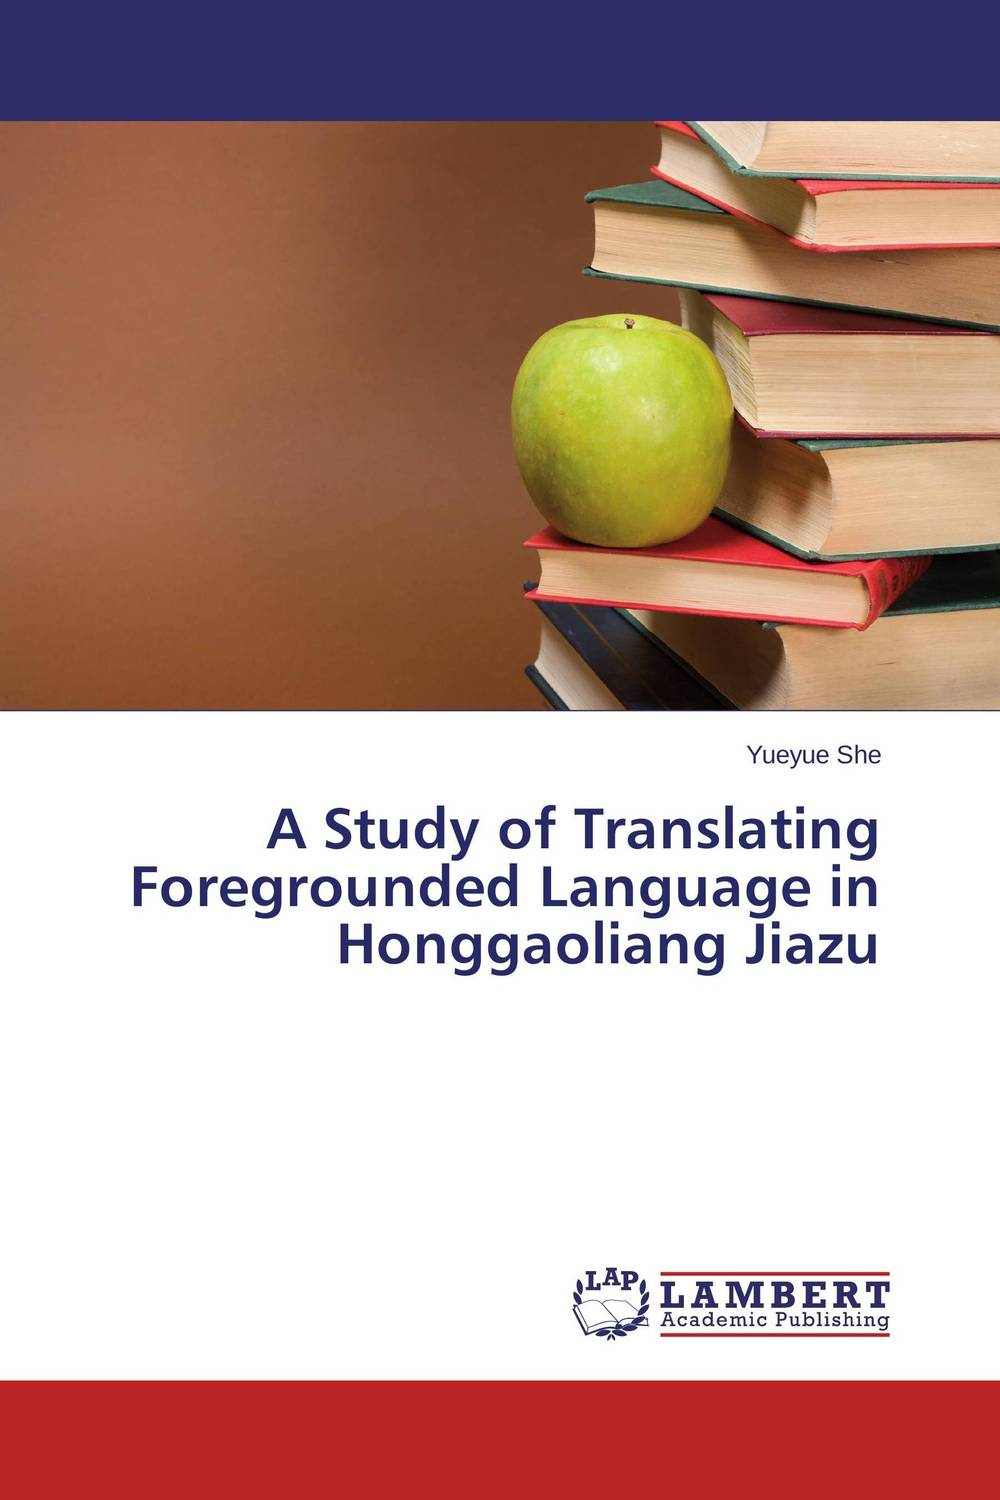 A Study of Translating Foregrounded Language in Honggaoliang Jiazu belousov a security features of banknotes and other documents methods of authentication manual денежные билеты бланки ценных бумаг и документов